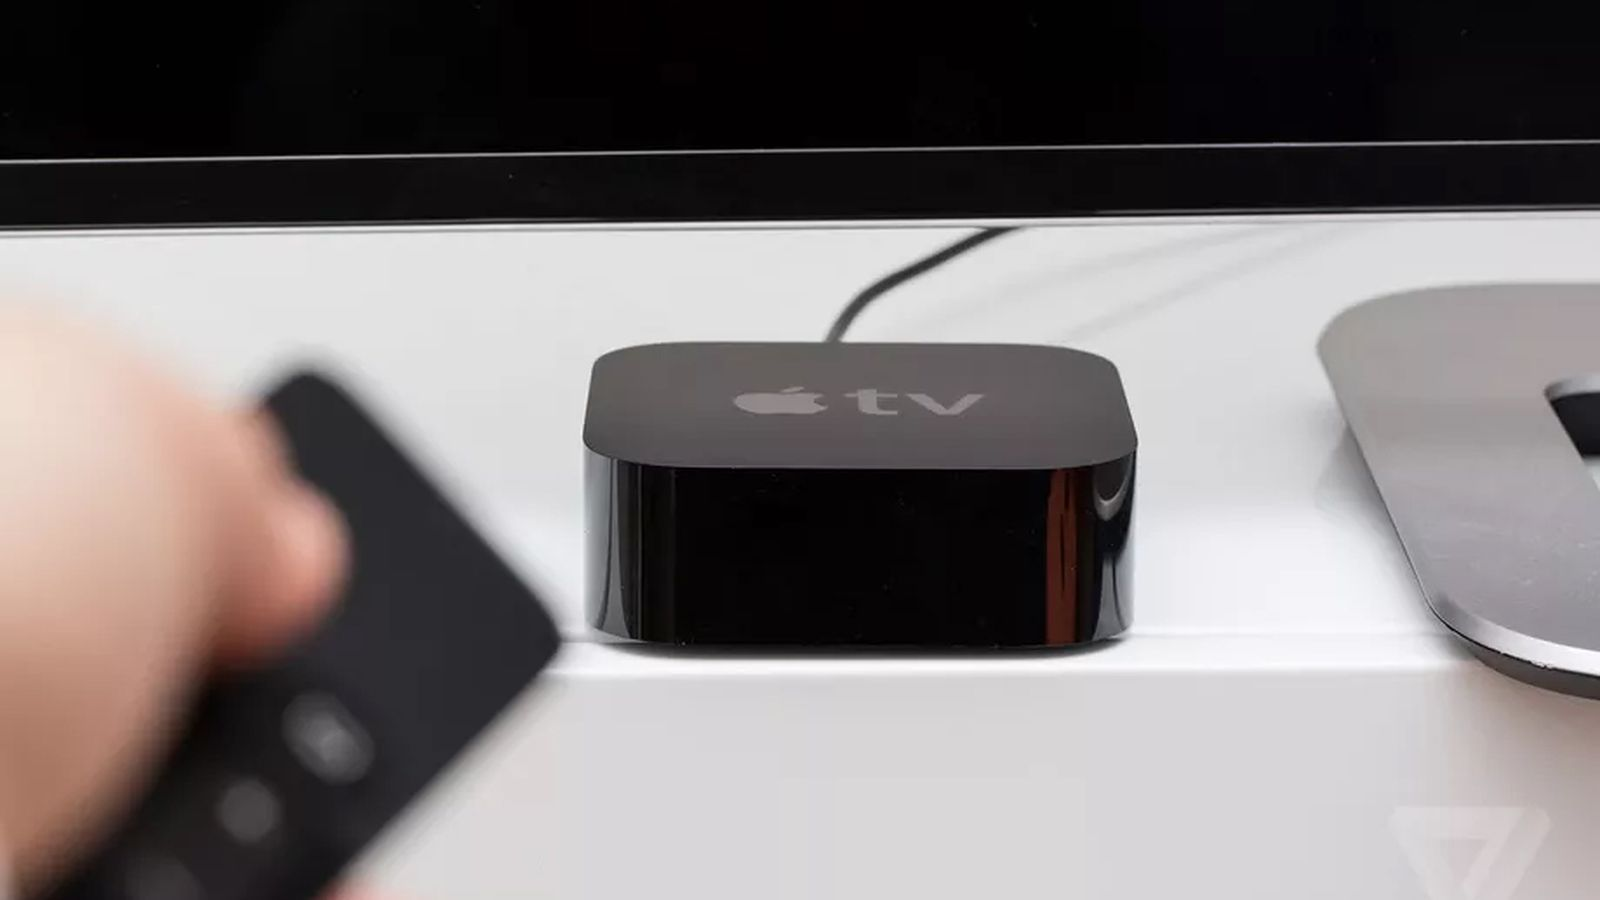 Pin By Arata On New Gadgets Tv App Apple Tv Tv Services